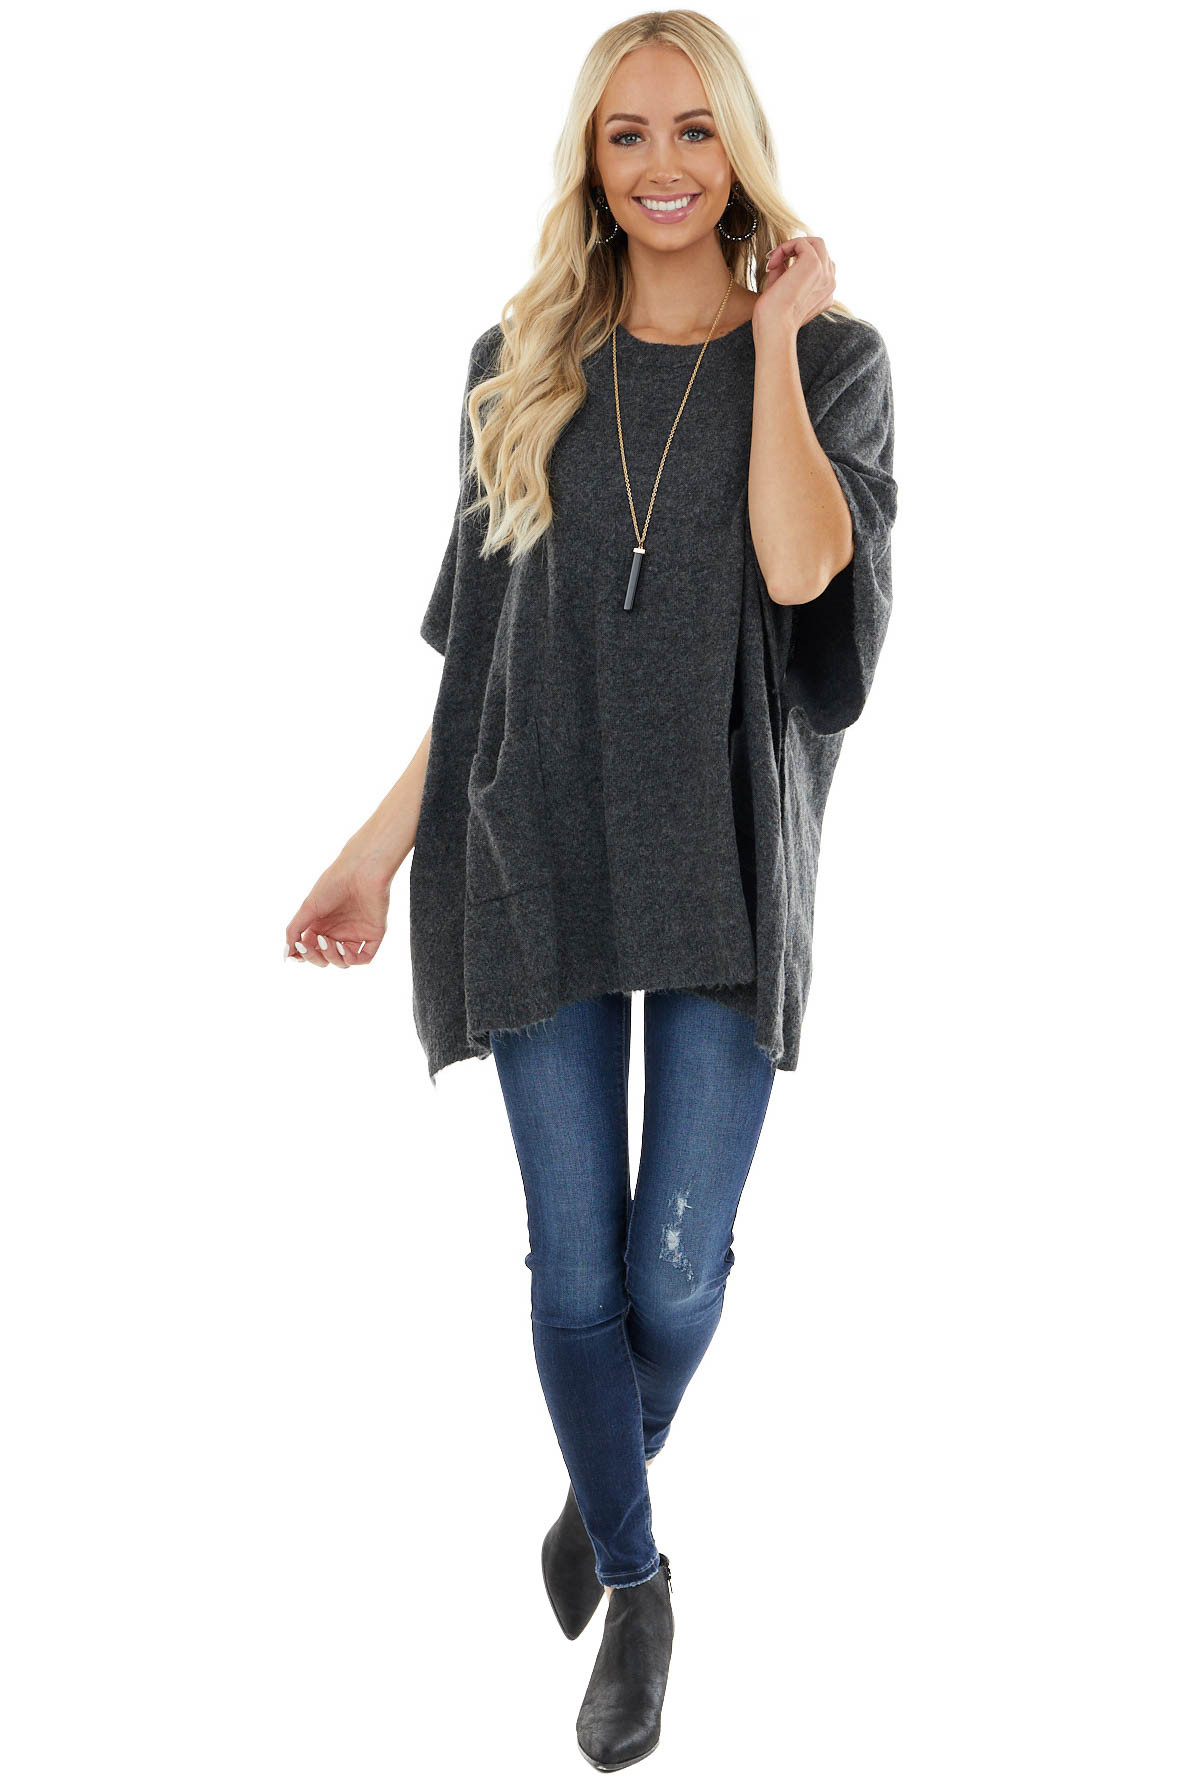 Stormy Grey Stretchy Knit Poncho Sweater with Front Pockets